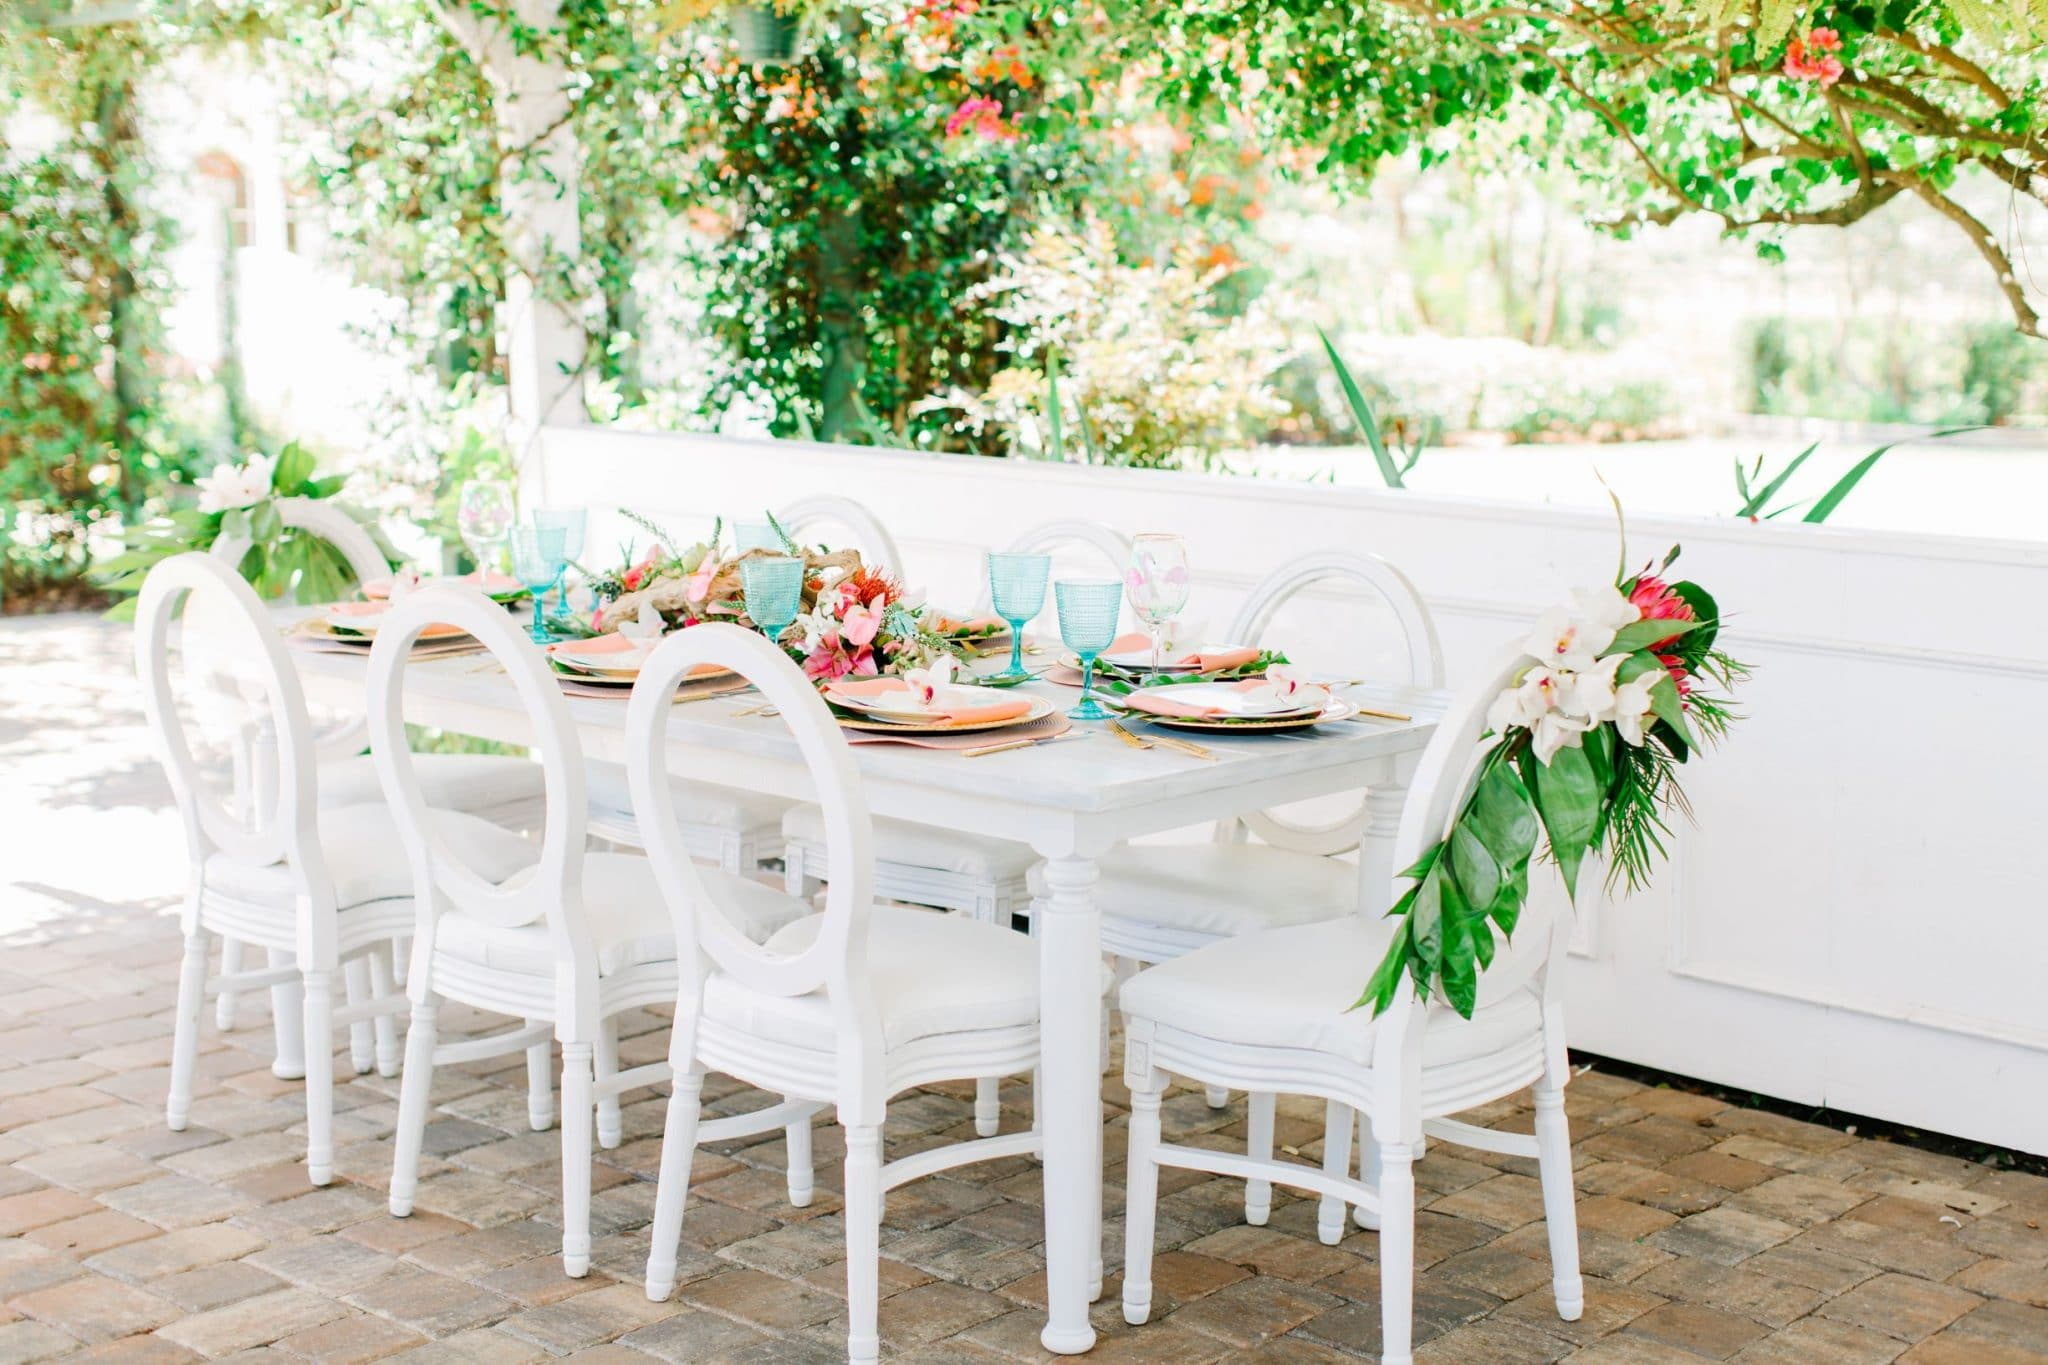 outside table set up all in white with greens and blue glasses